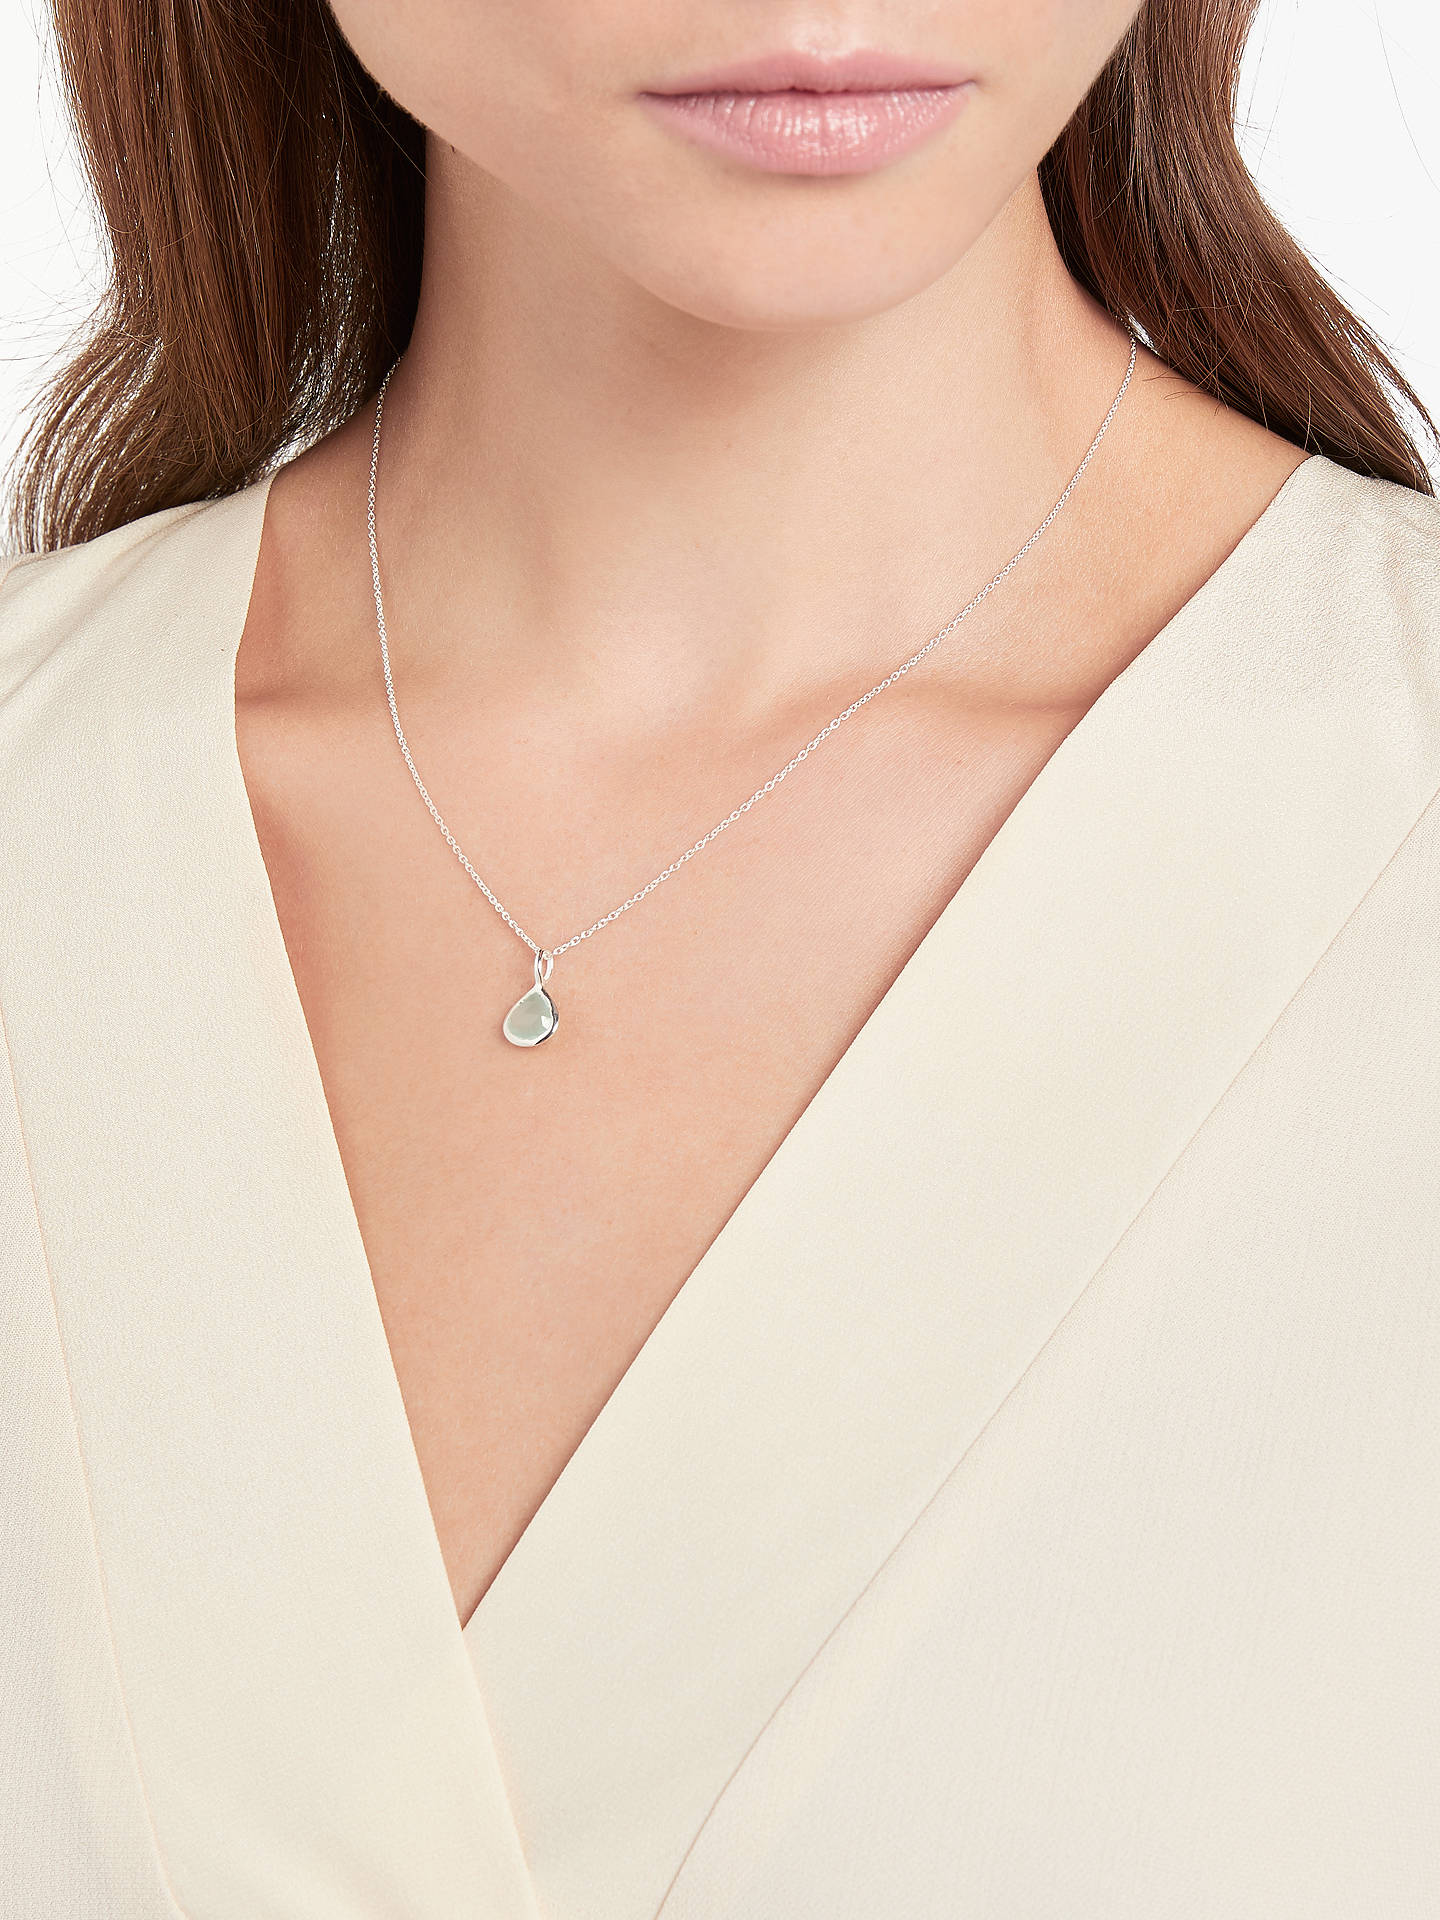 BuyJohn Lewis & Partners Semi-Precious Stone Birthstone Pendant Necklace, March Aqua Chalcedony Online at johnlewis.com